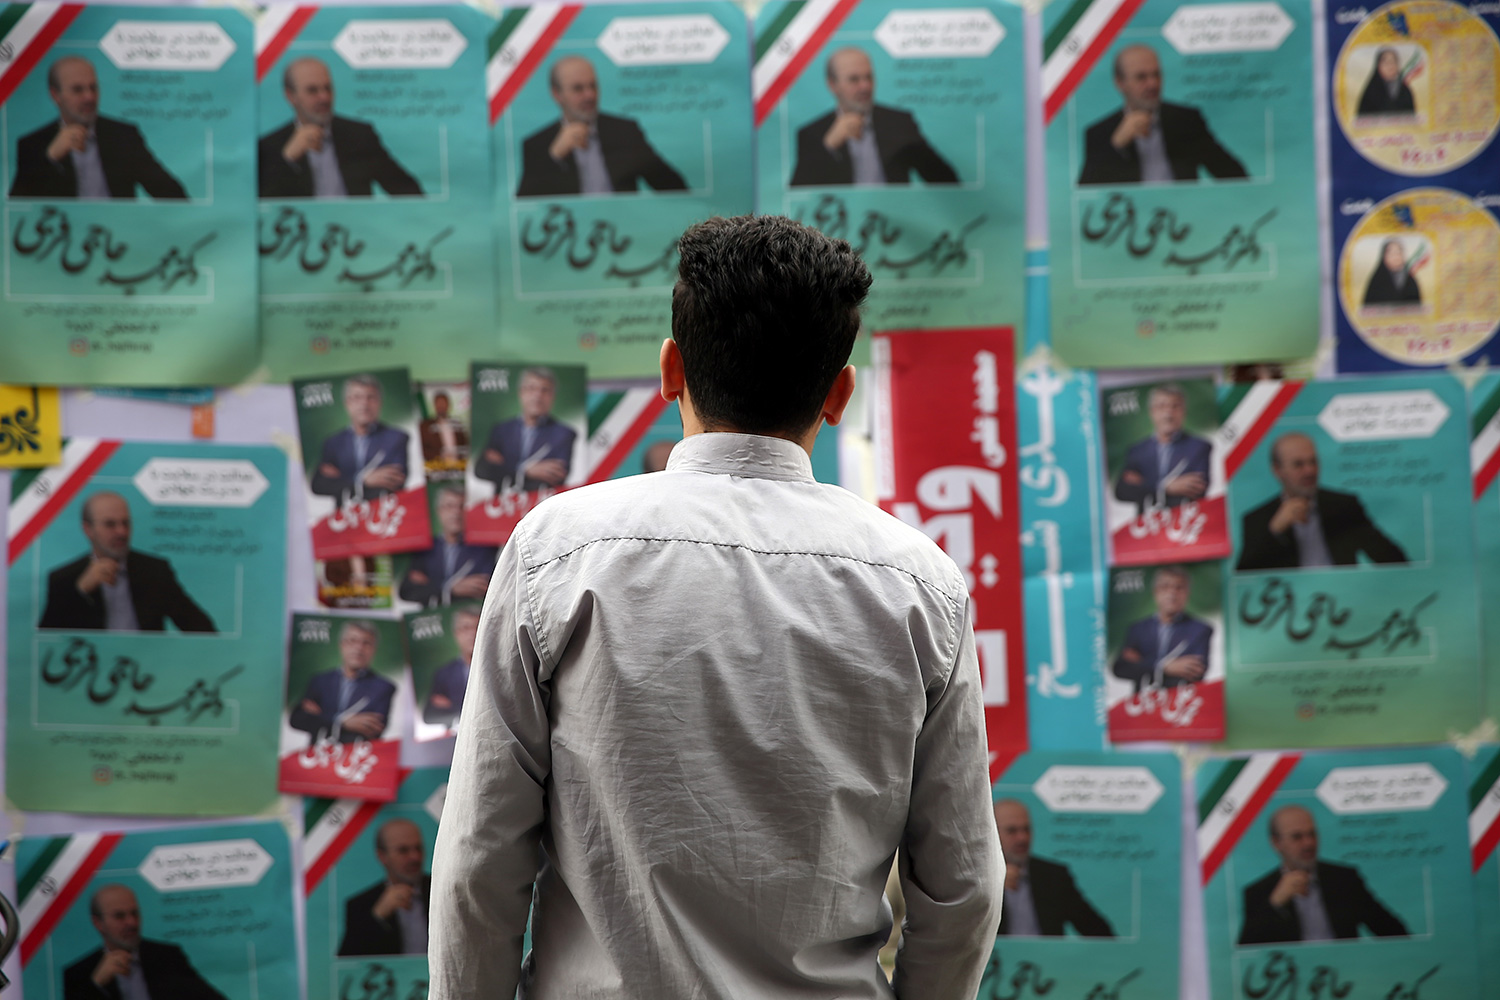 A man looks at parliamentary election campaign posters in Tehran, Iran on February 19, 2020. The photo shows the man standing in front of a board that is placarded with multiple political campaign posters, many of them identical and pasted over and over. The predominant colors are green, white, and red—like the Iranian flag. WANA/Nazanin Tabatabaee via REUTERS.